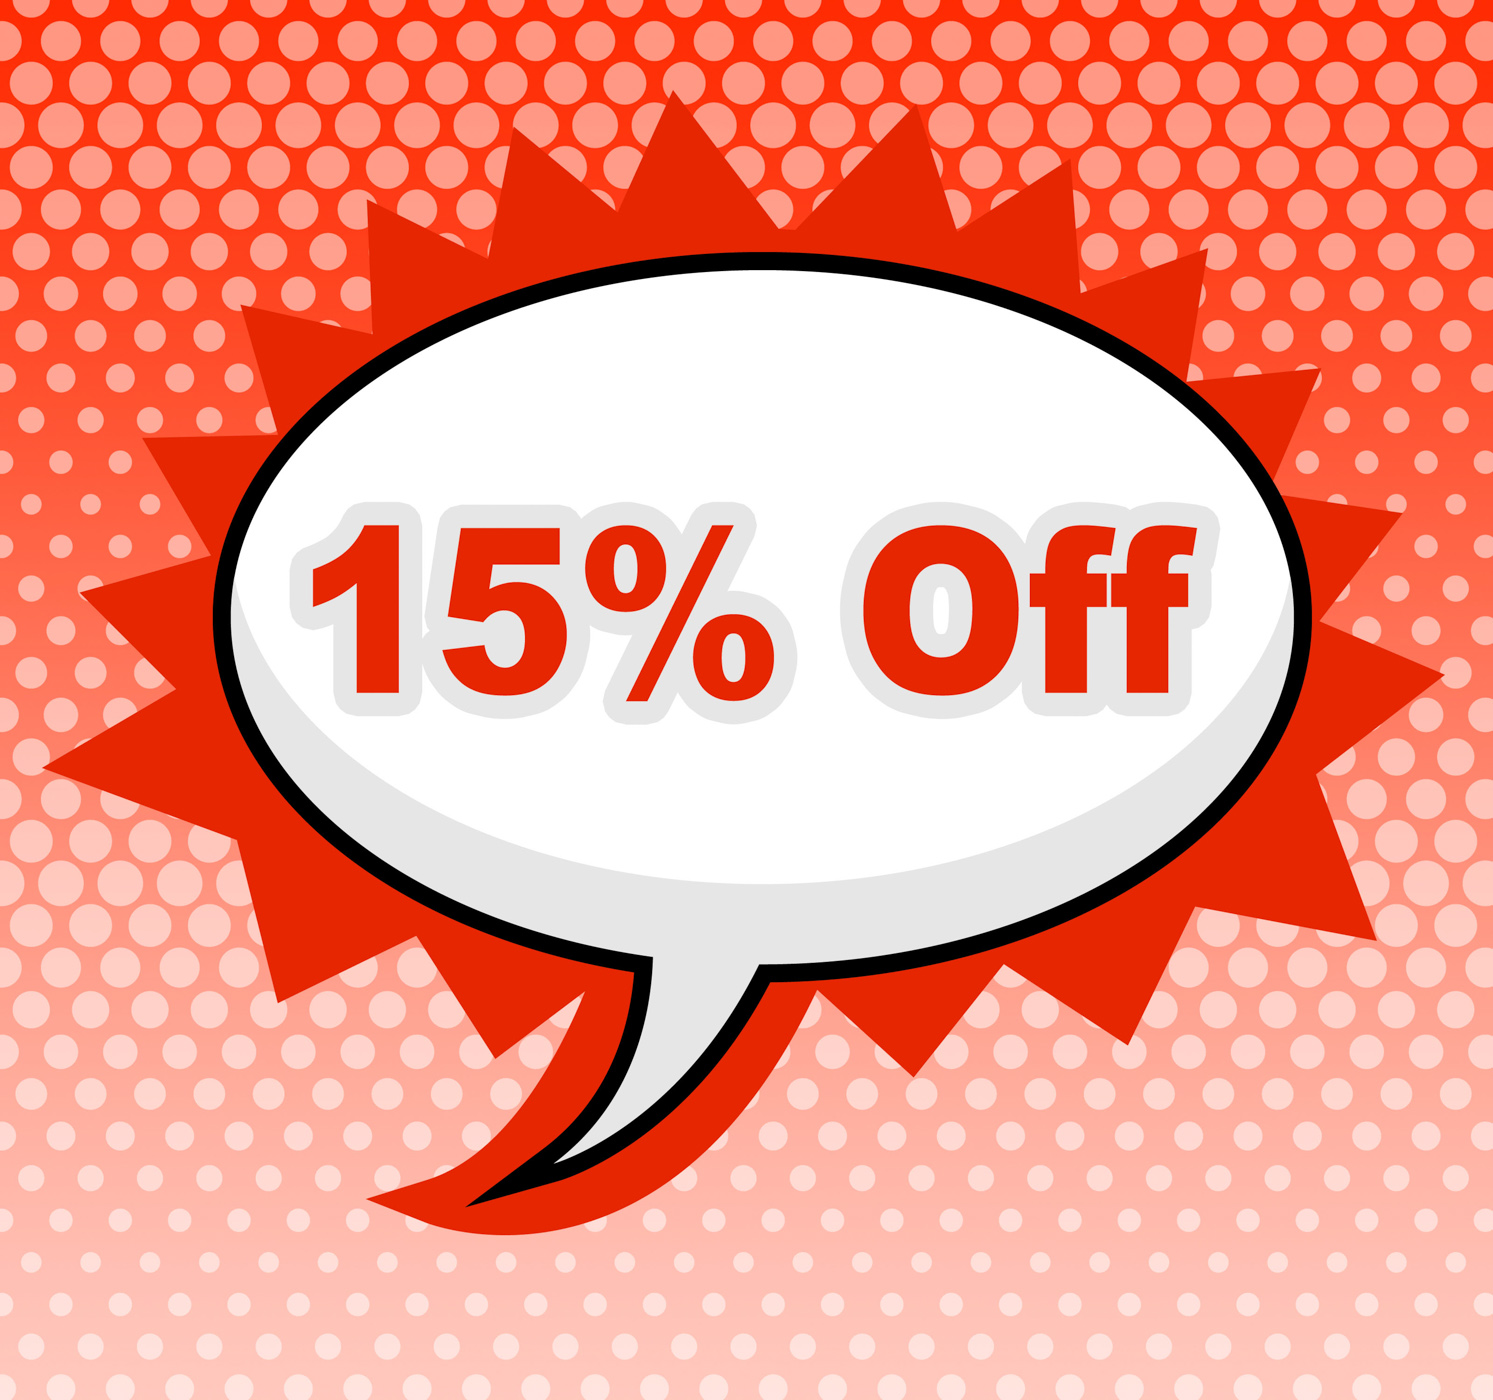 Fifteen percent off represents promotion closeout and promotional photo